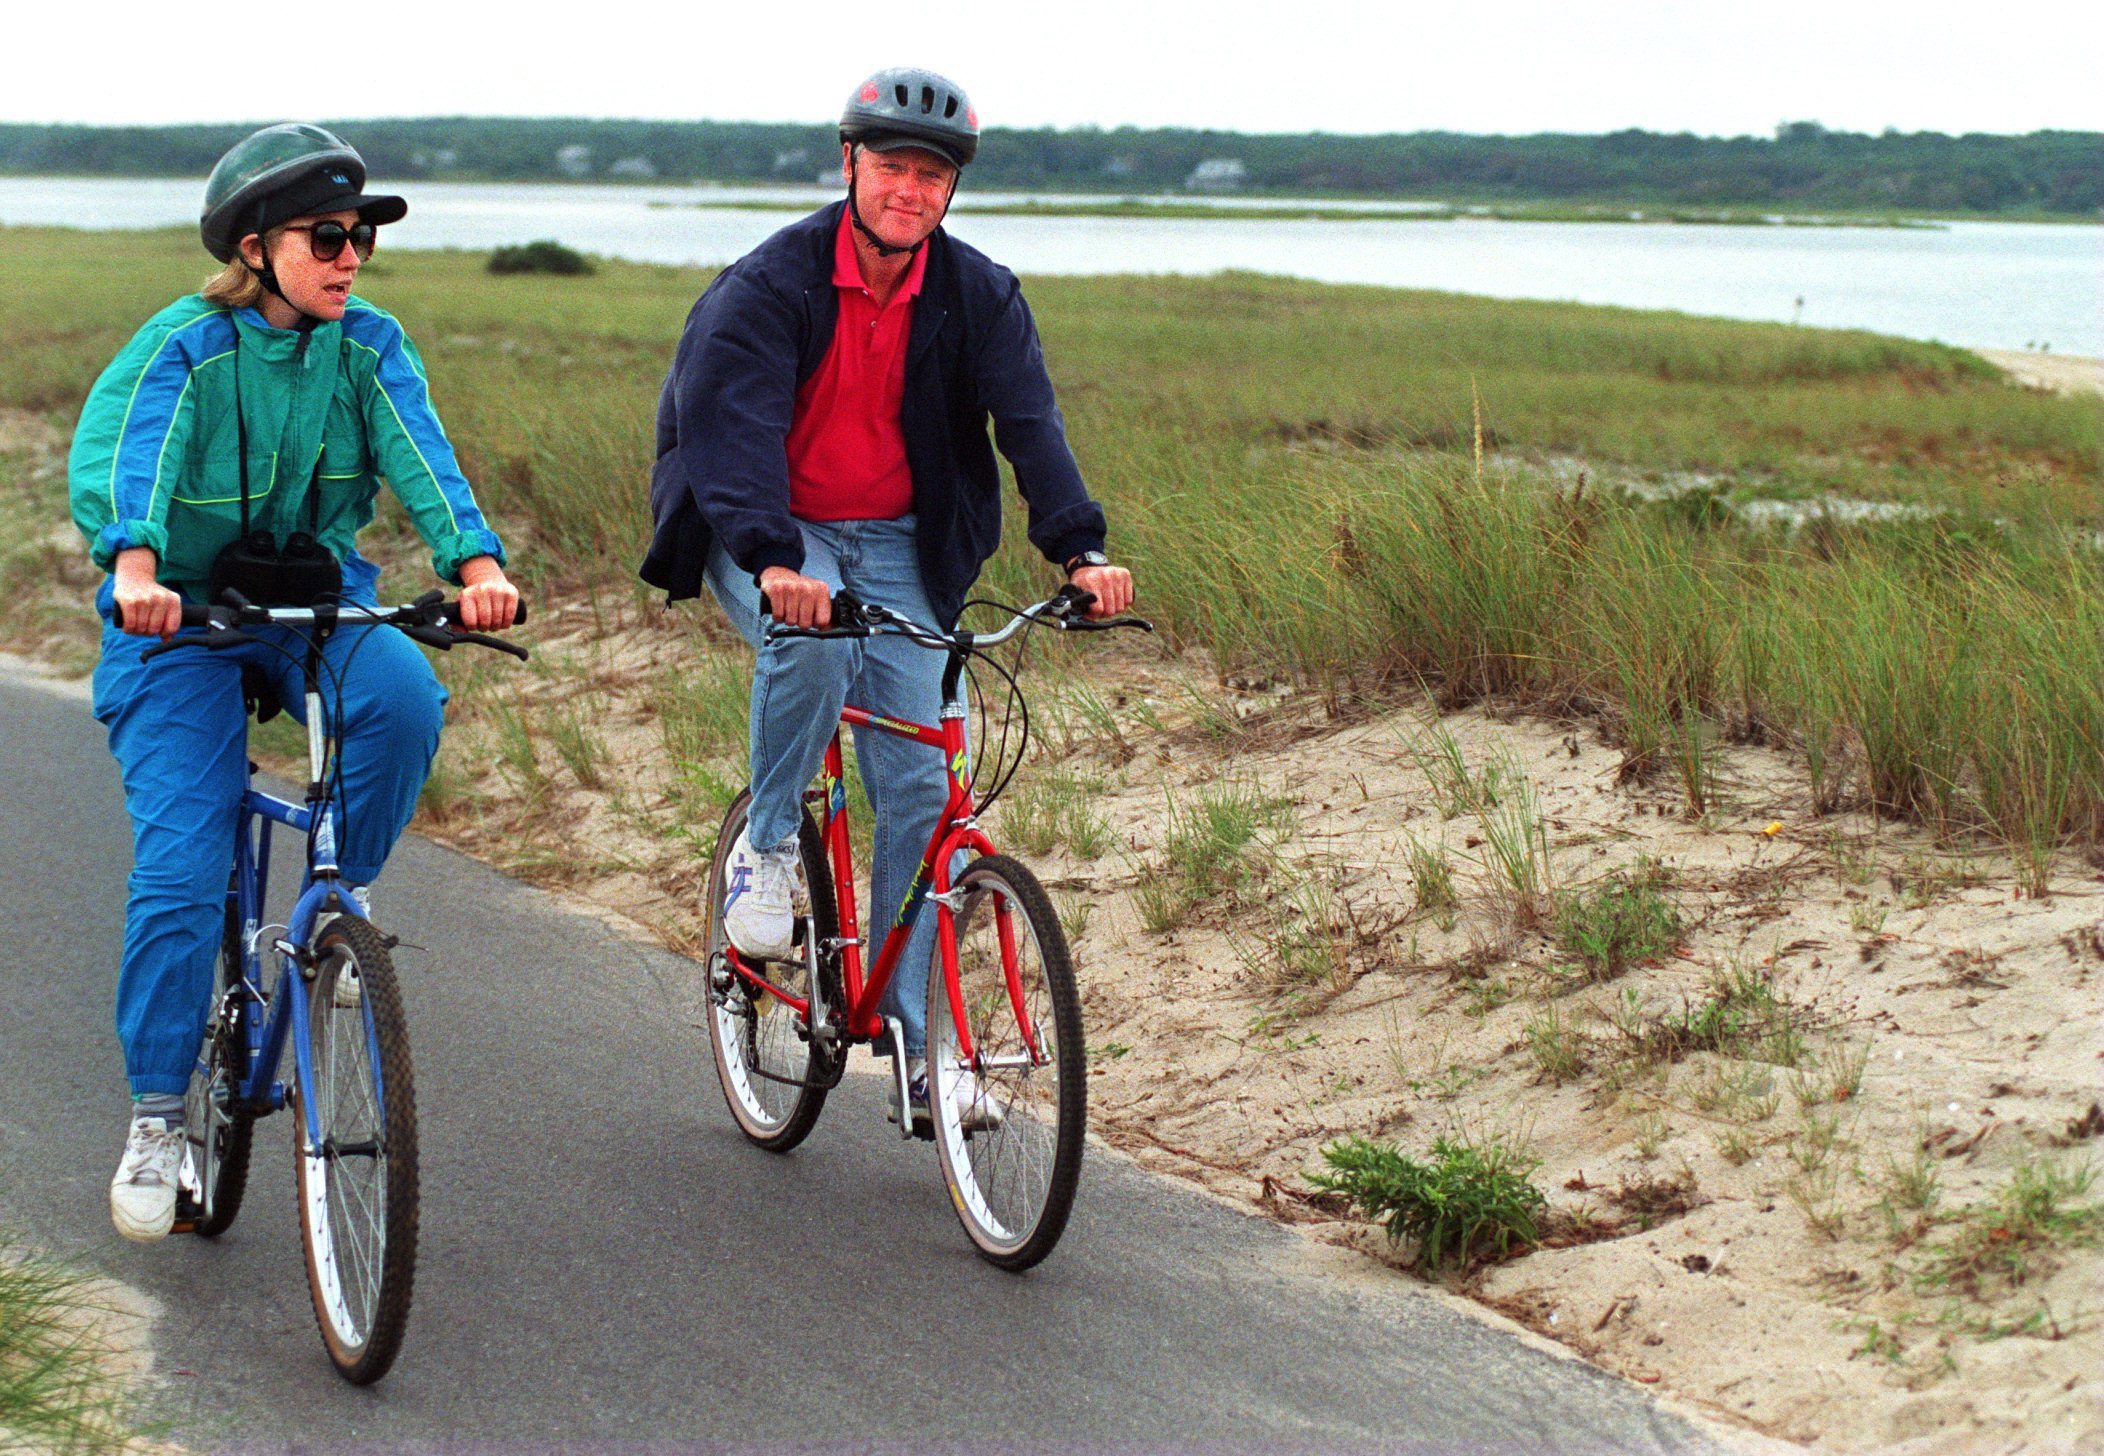 President Bill Clinton bikes with his wife, Hillary Clinton, during their vacation on Martha's Vineyard in 1994.